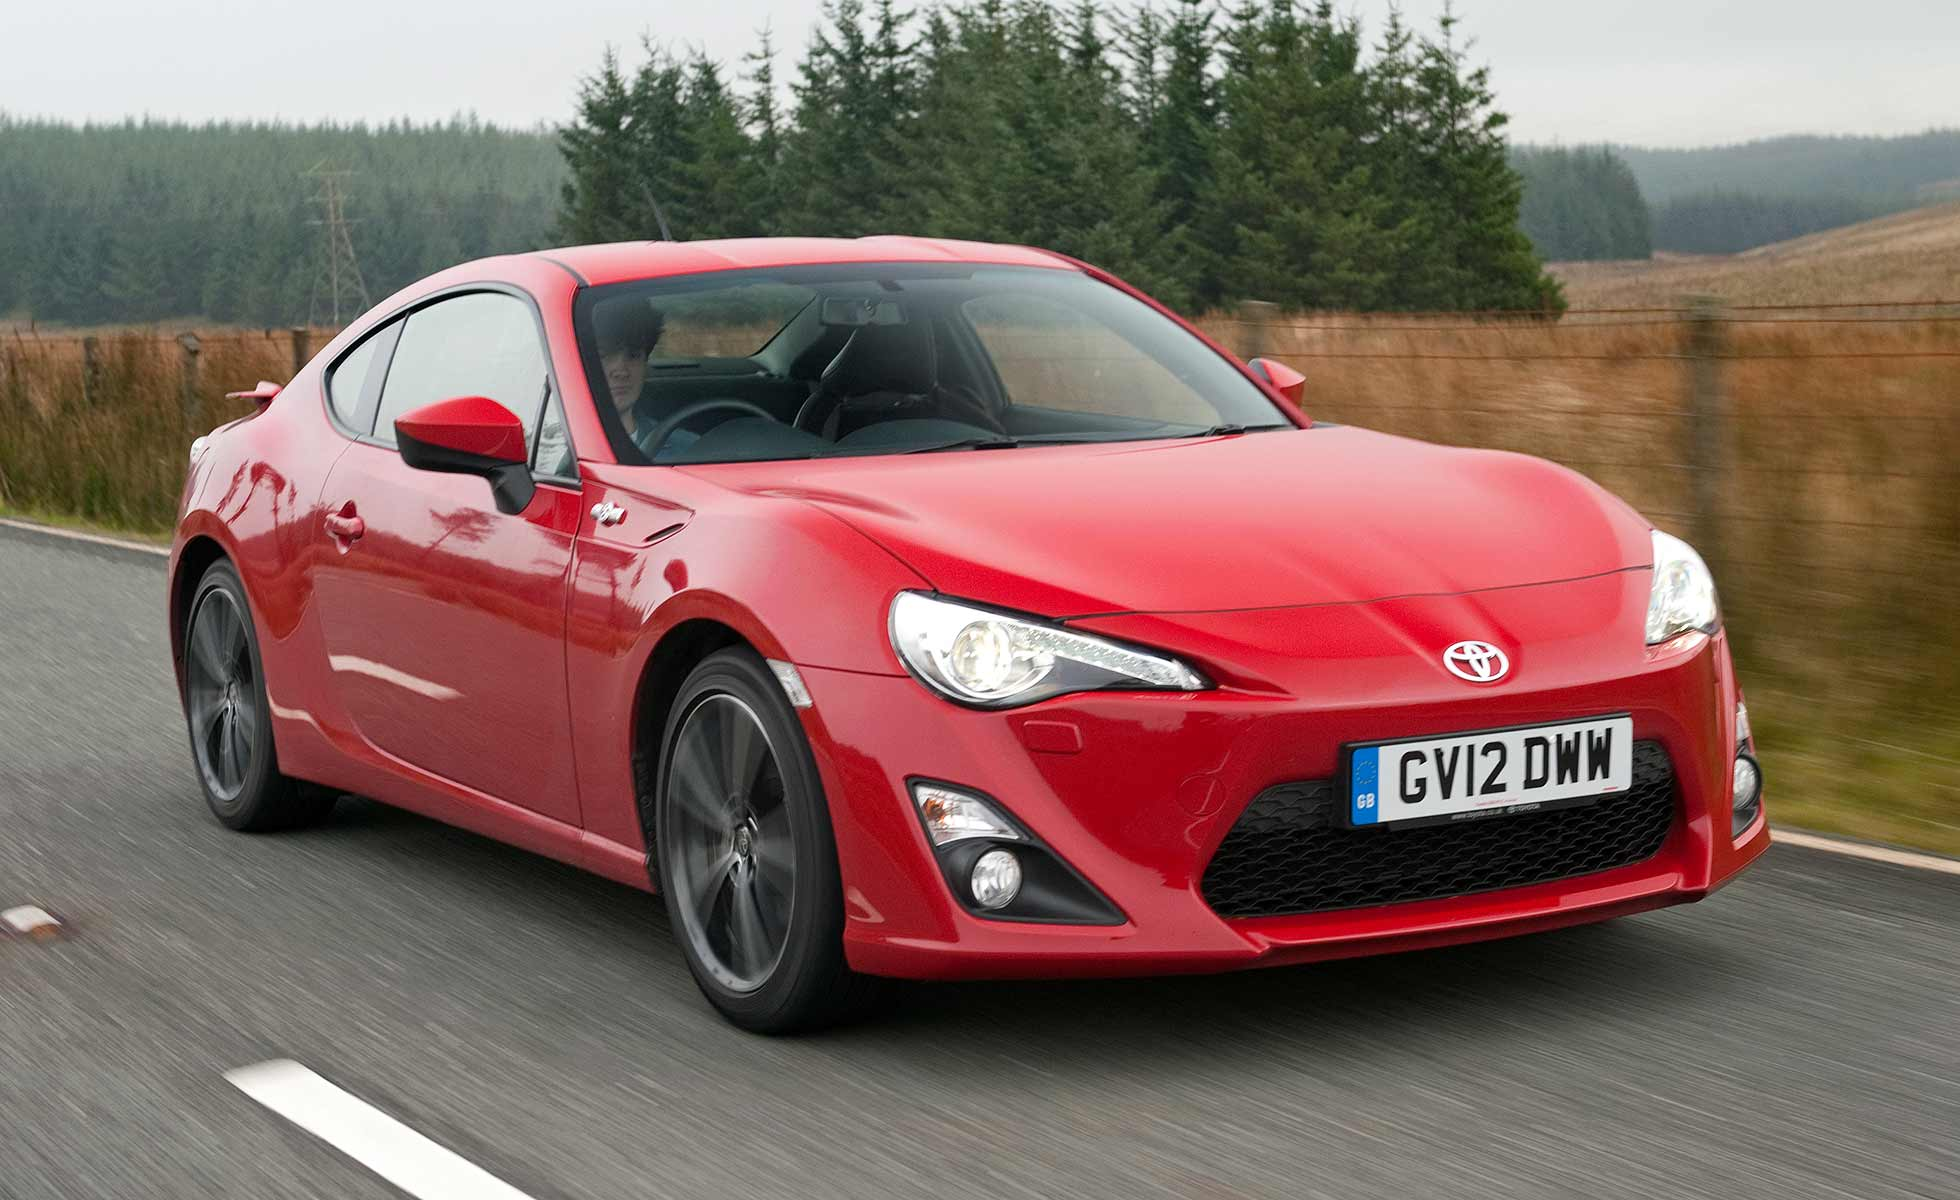 toyota cuts entry price of gt86 to 22 995 motoring research. Black Bedroom Furniture Sets. Home Design Ideas